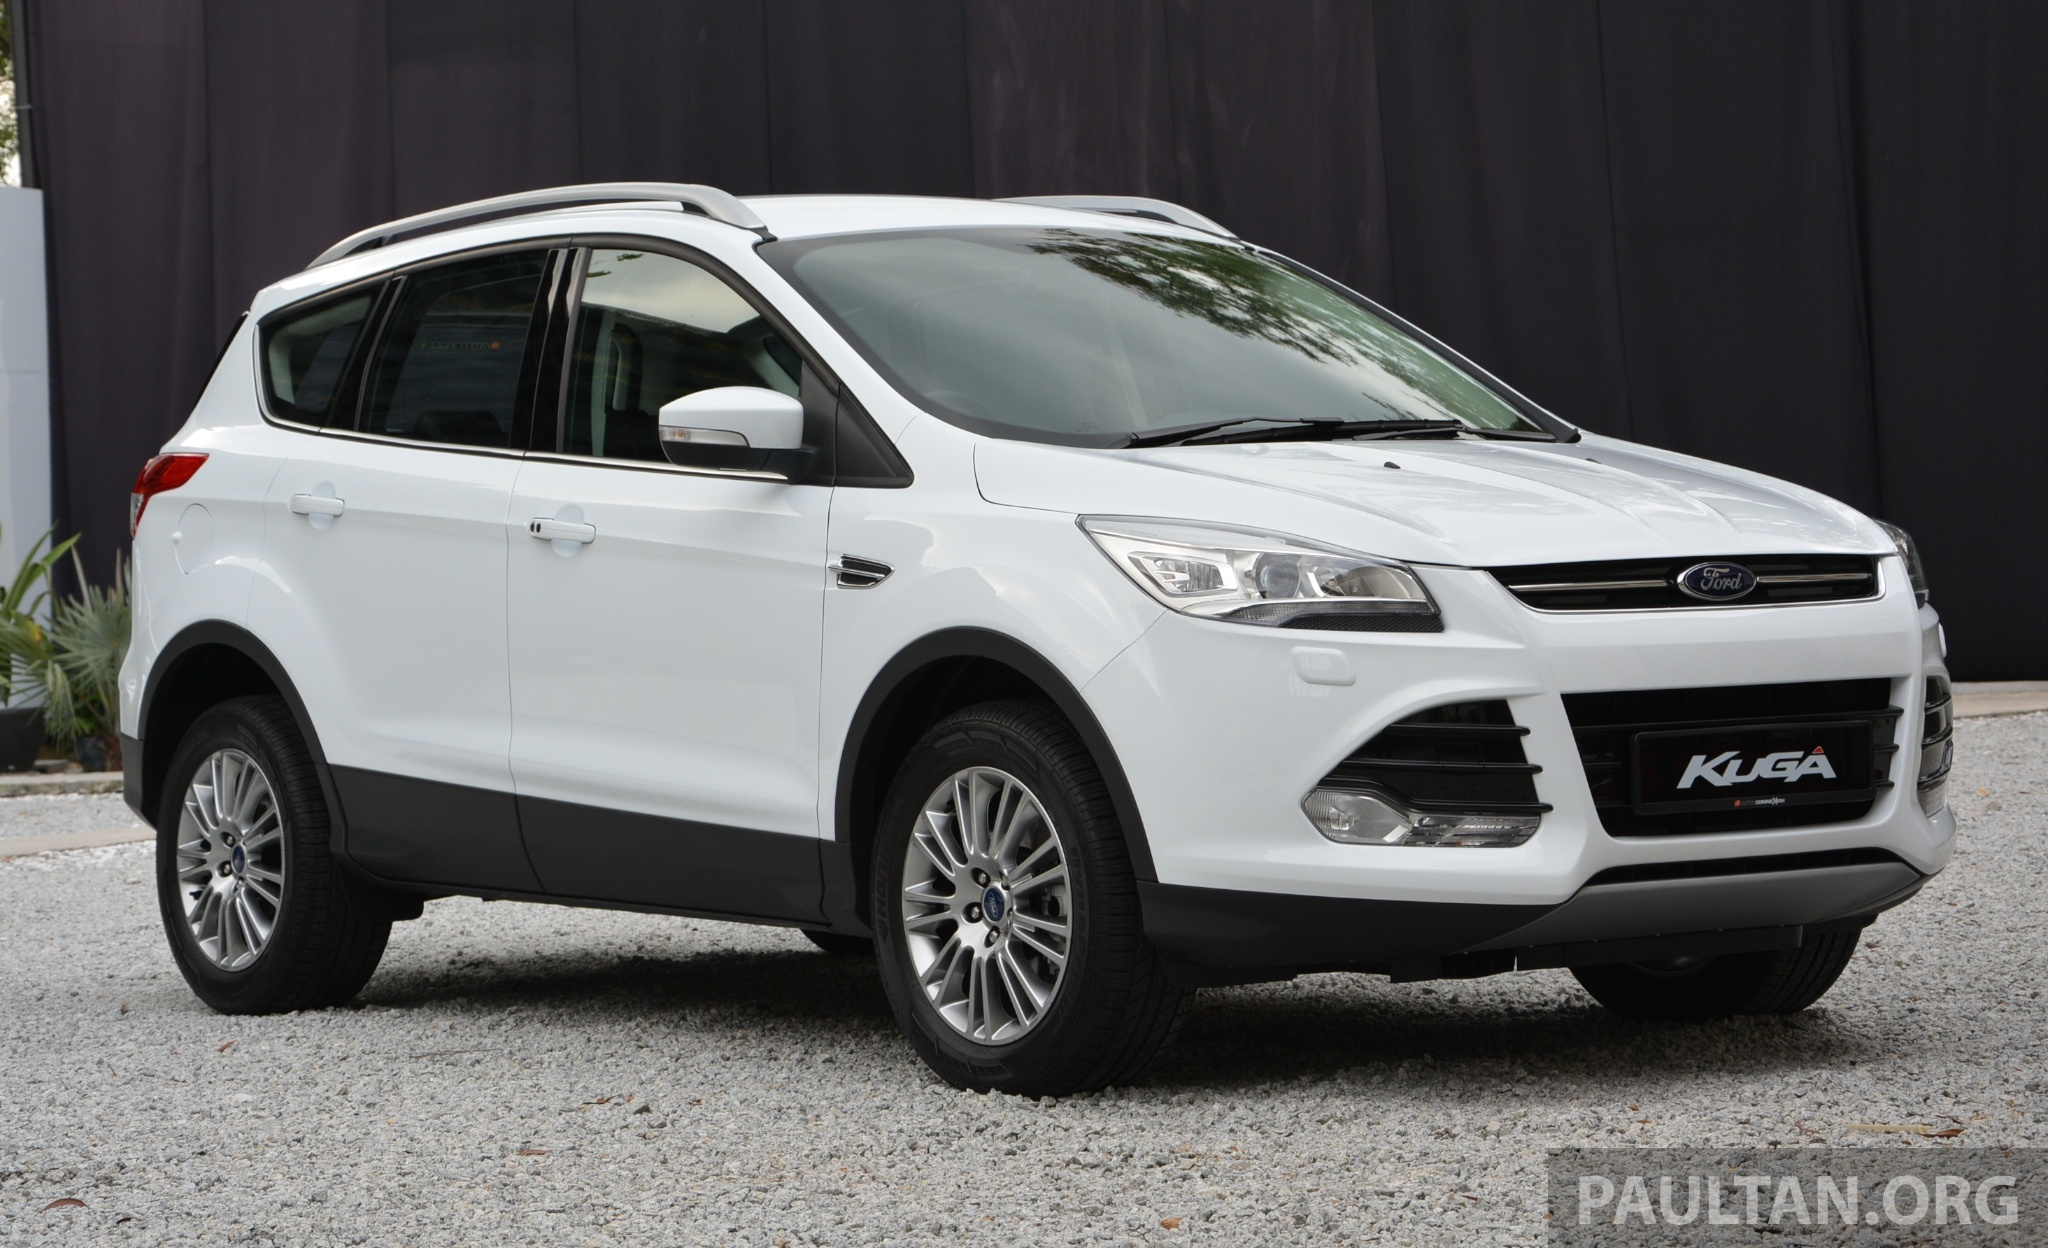 Ford kuga launched 1 6l ecoboost rm159 999 image 178969